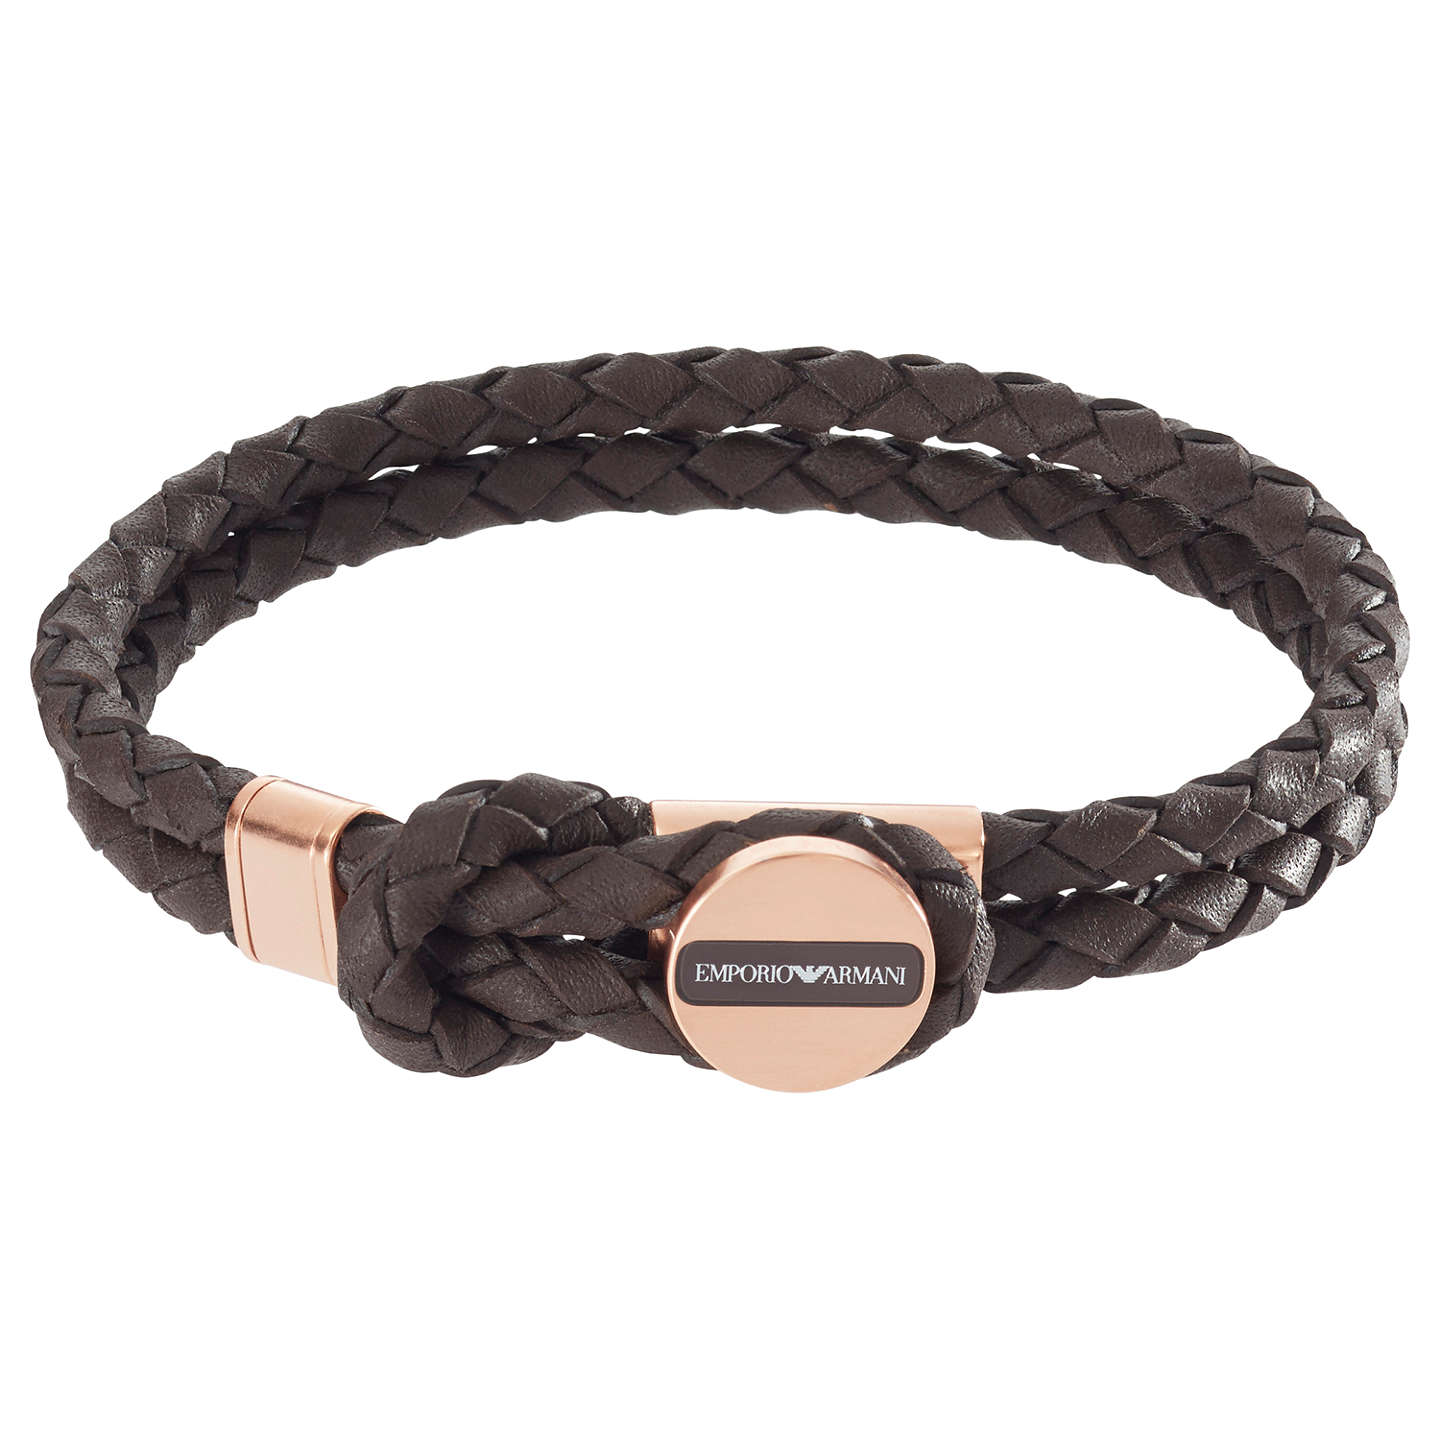 Emporio Armani Men S Braided Leather Bracelet Brown Gold Online At Johnlewis